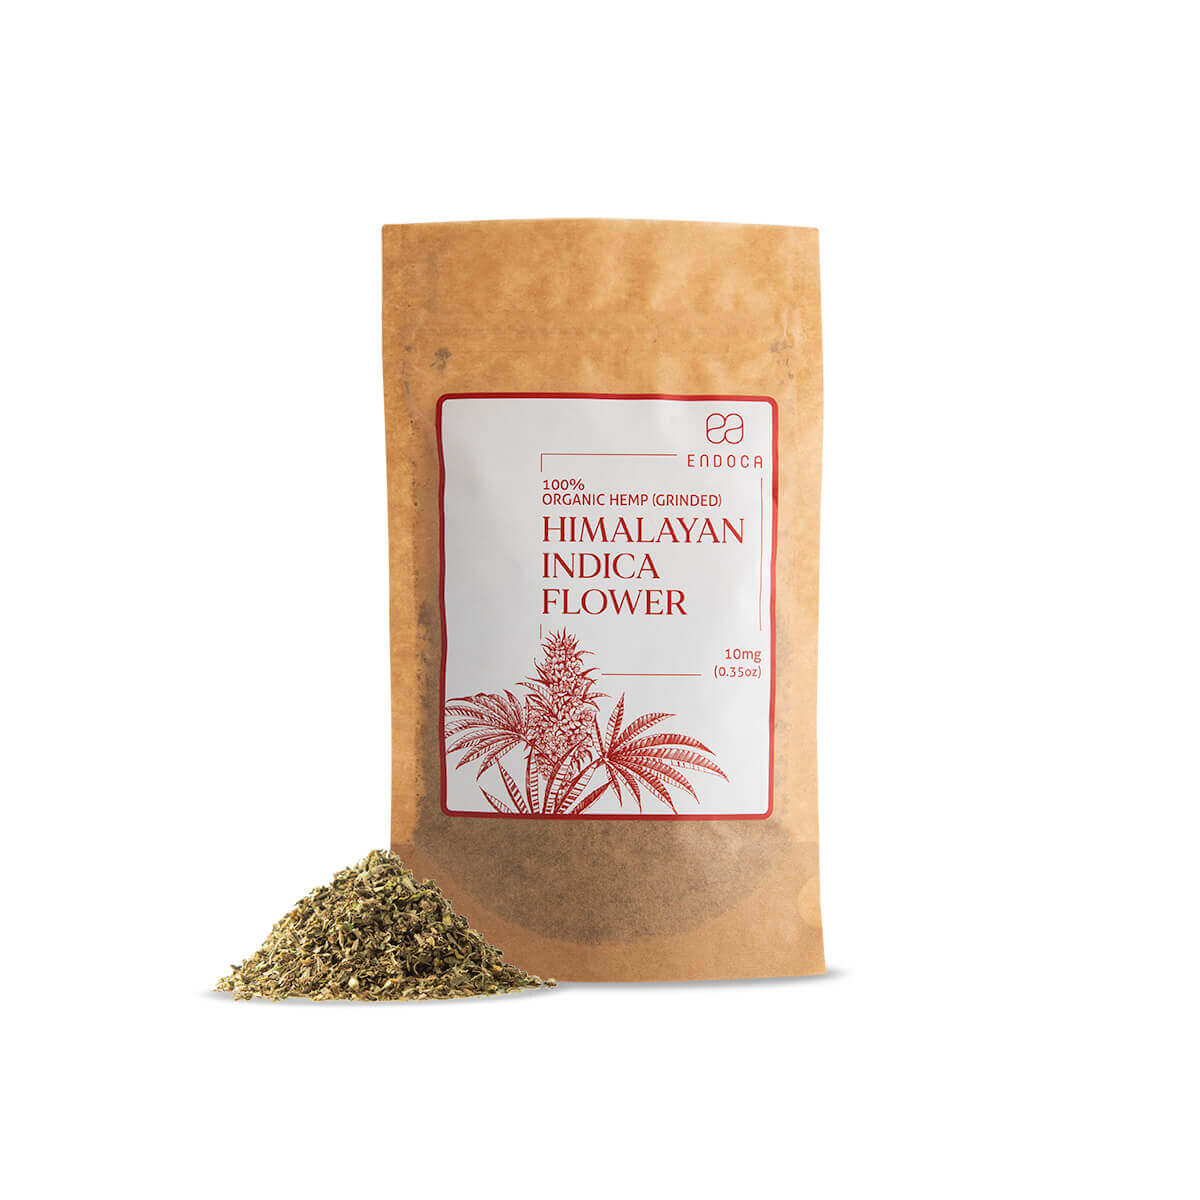 HIMALAYAN INDICA FLOWER (GRINDED)